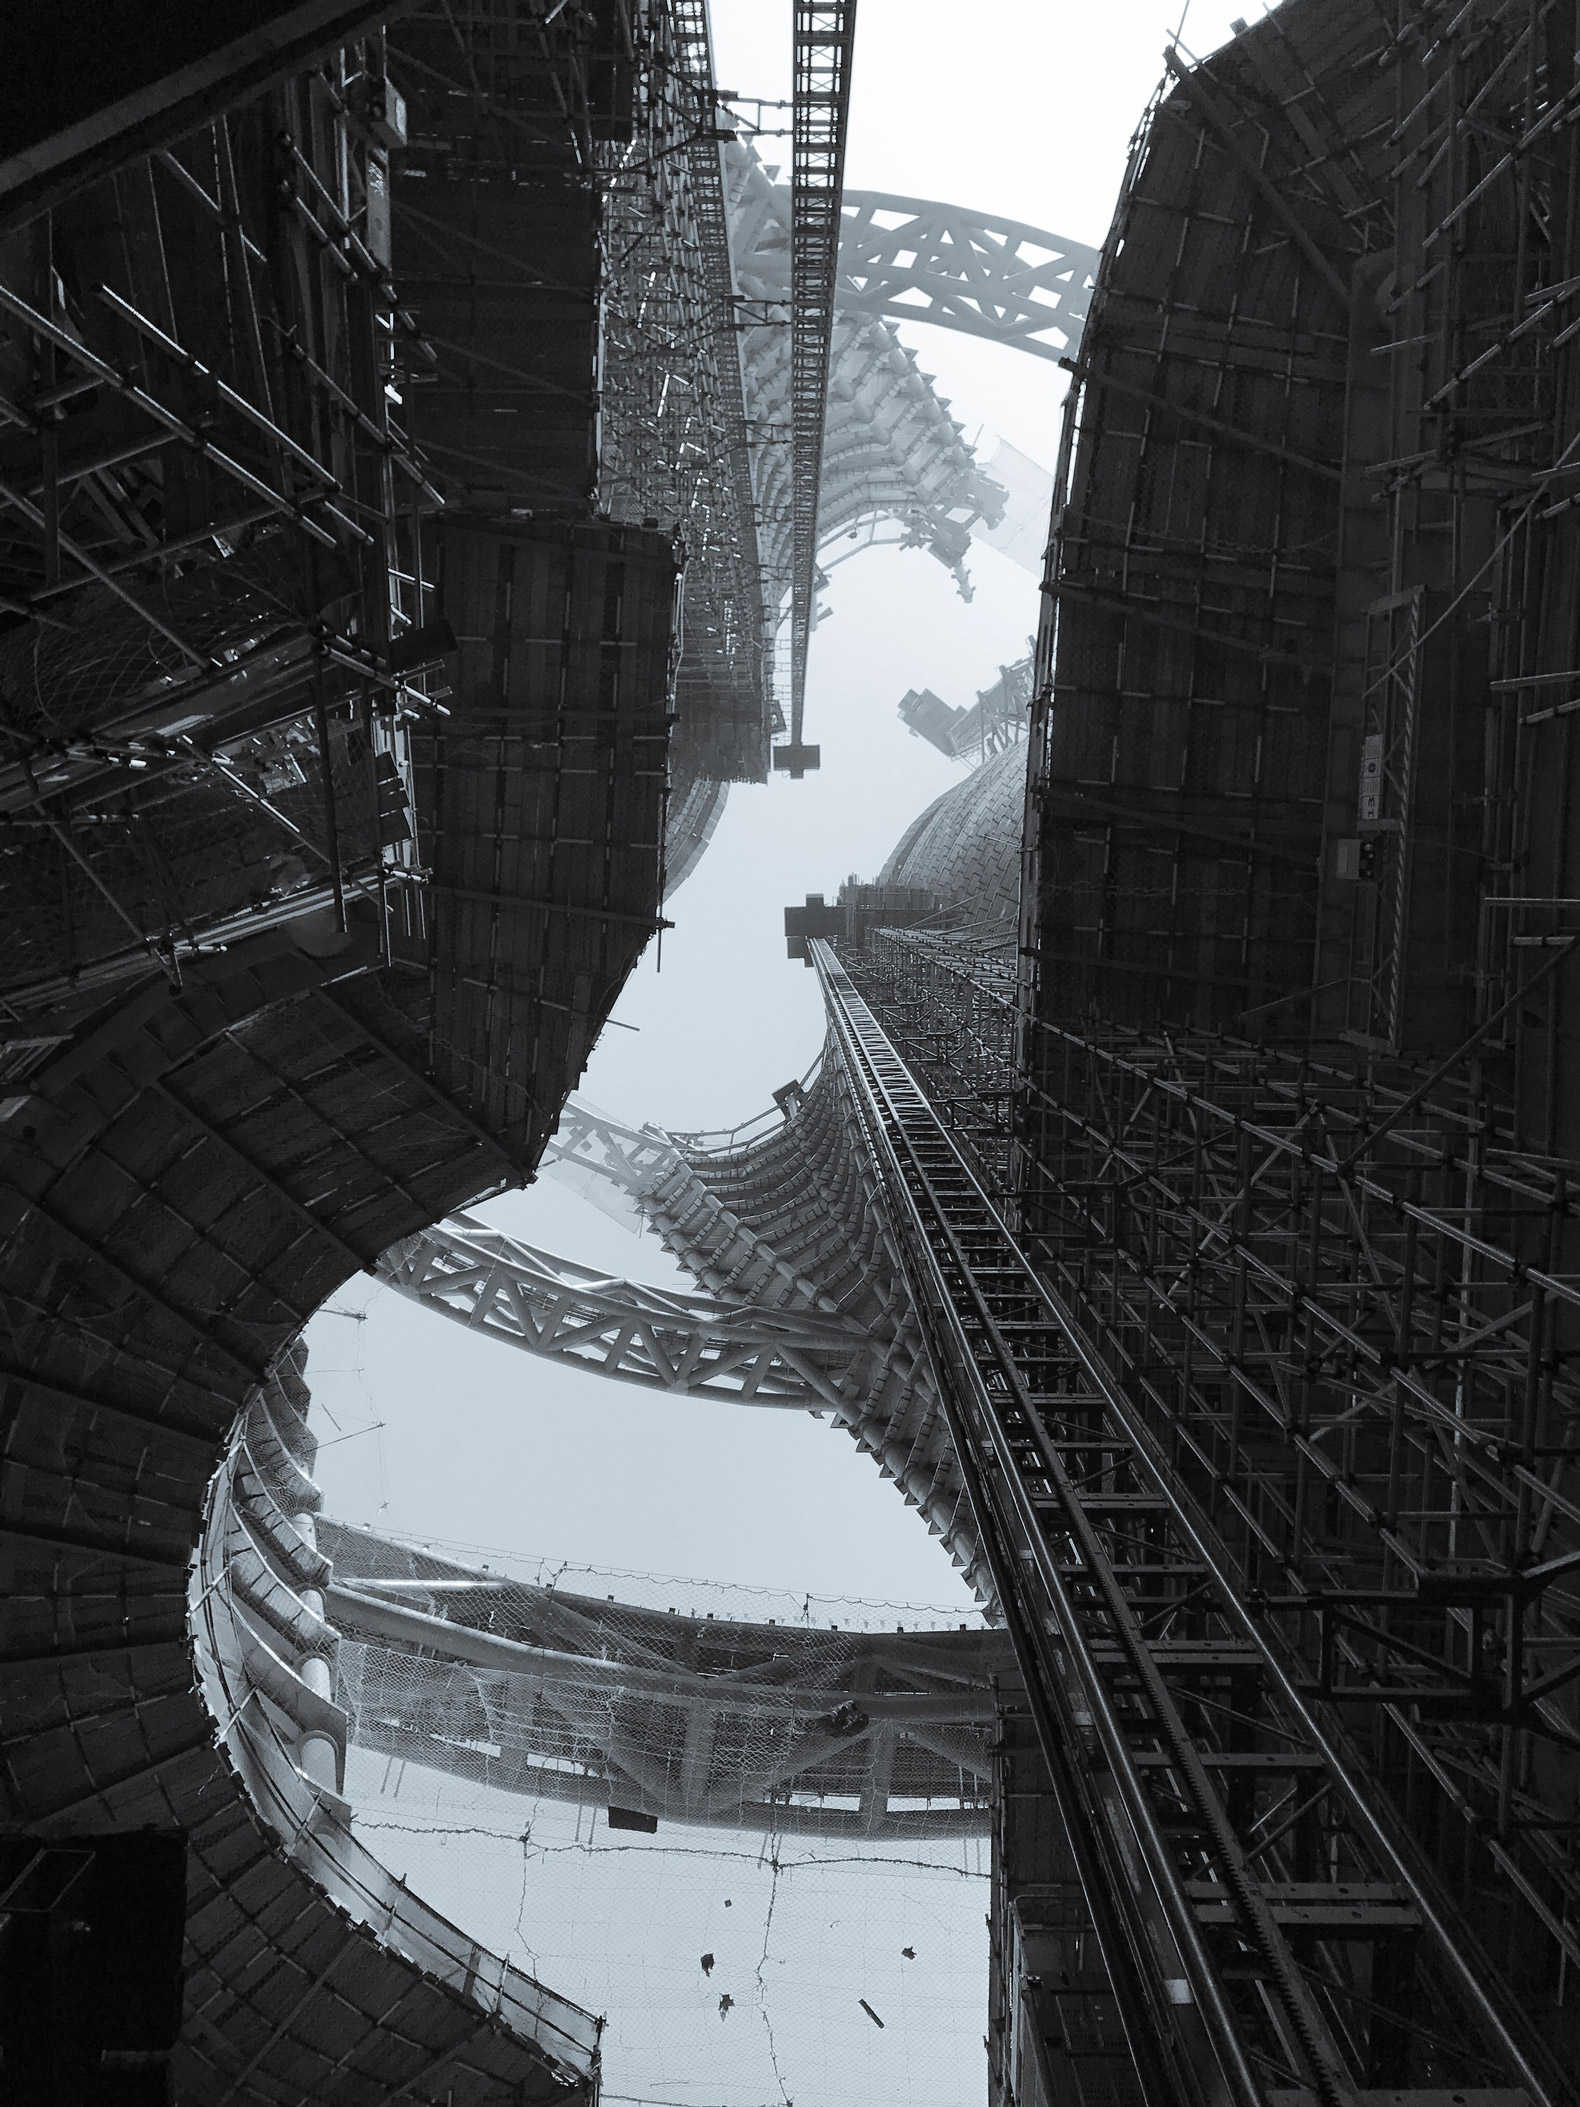 Construction. Leeza SOHO skyscraper by Zaha Hadid Architects. Photograph © Yicheng Yang. Image courtesy of Zaha Hadid Architects and SOHO China